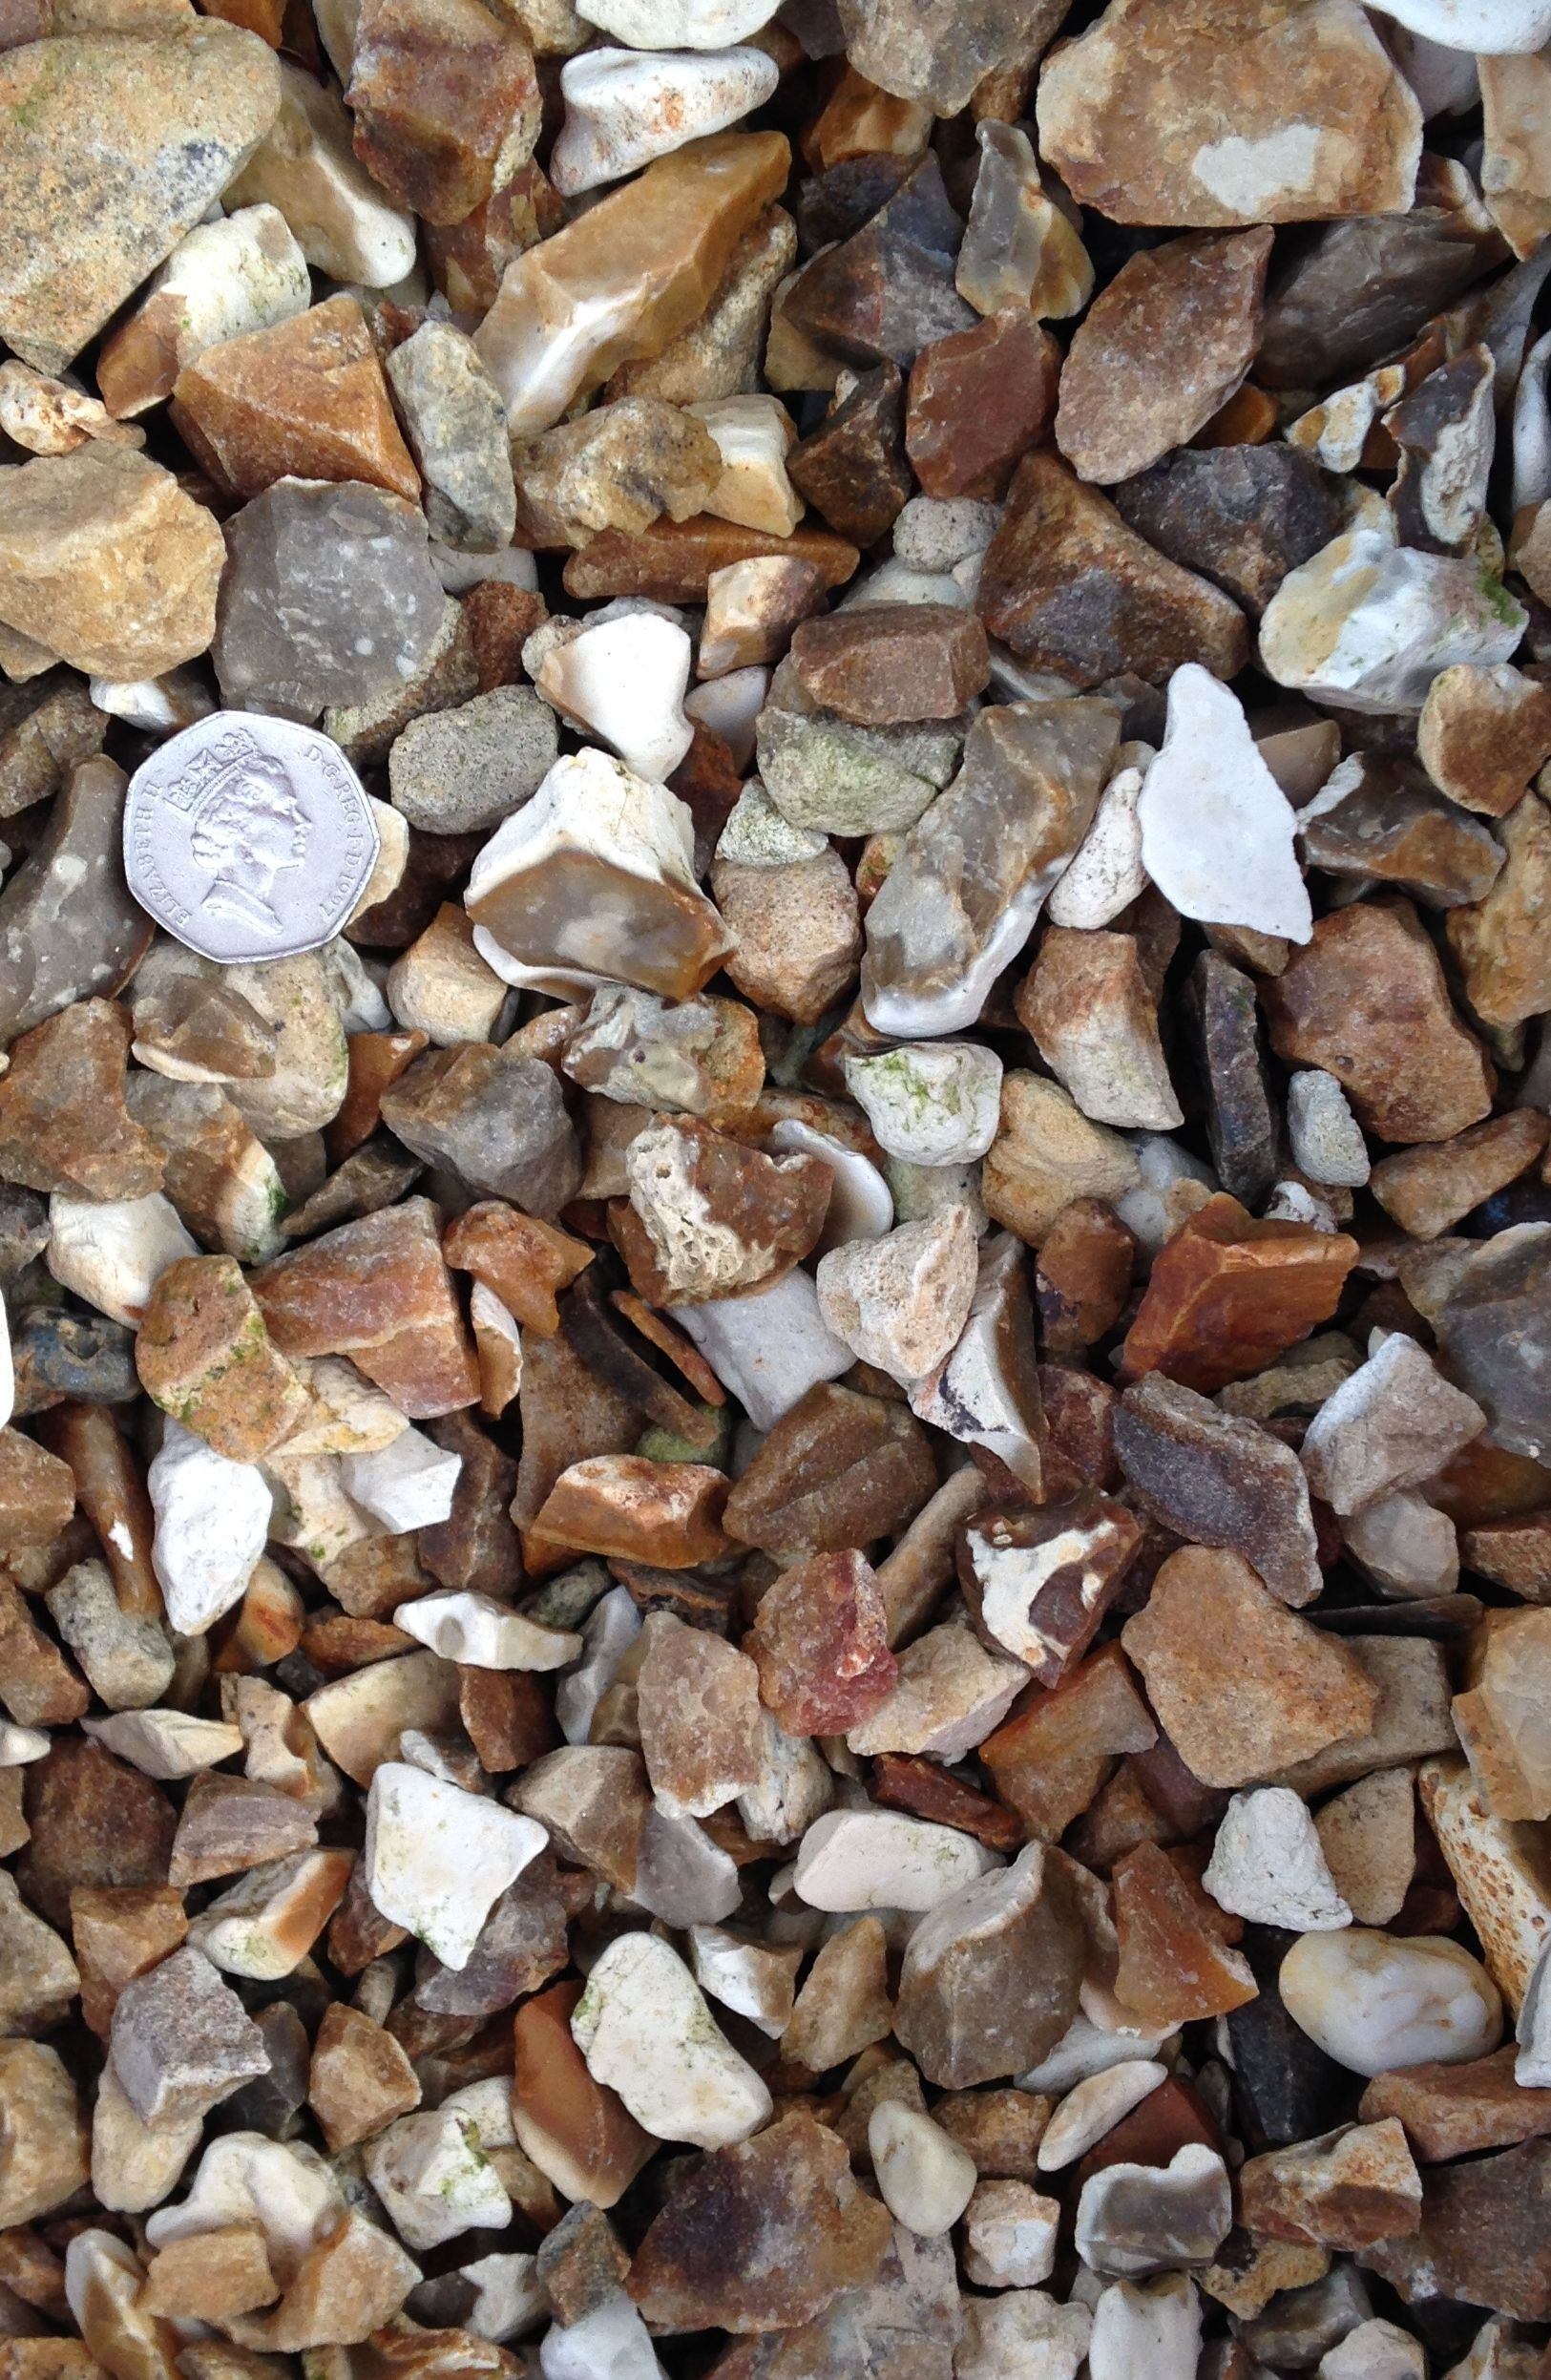 20 6mm Flint Gravel As Seen Dry With Scale Provided Decorative Gravel Gravel Dried